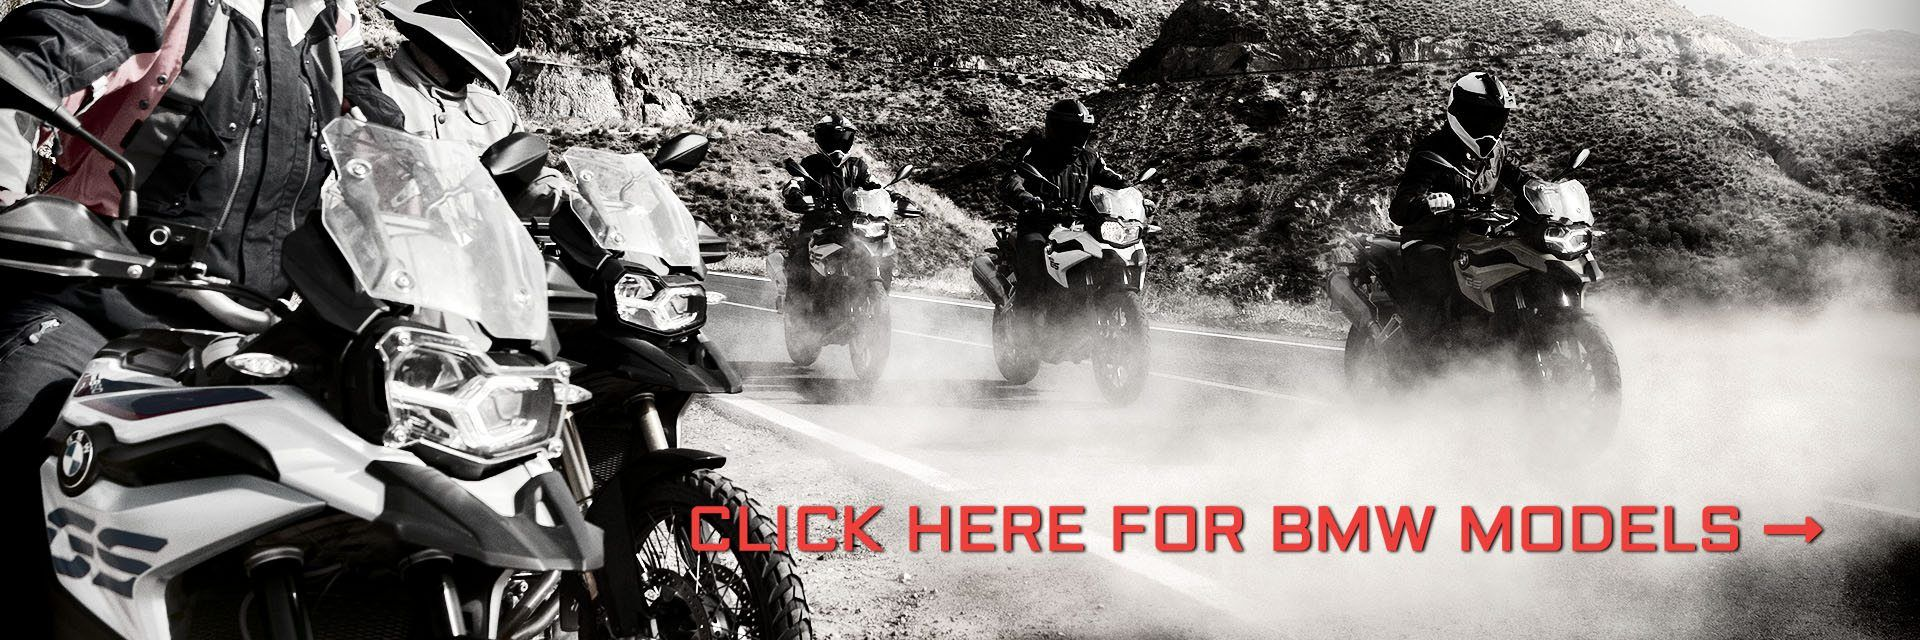 Start Your Adventure | BMW Motorcycles | Grass Roots BMW Motorcycles in Cape Girardeau, MO